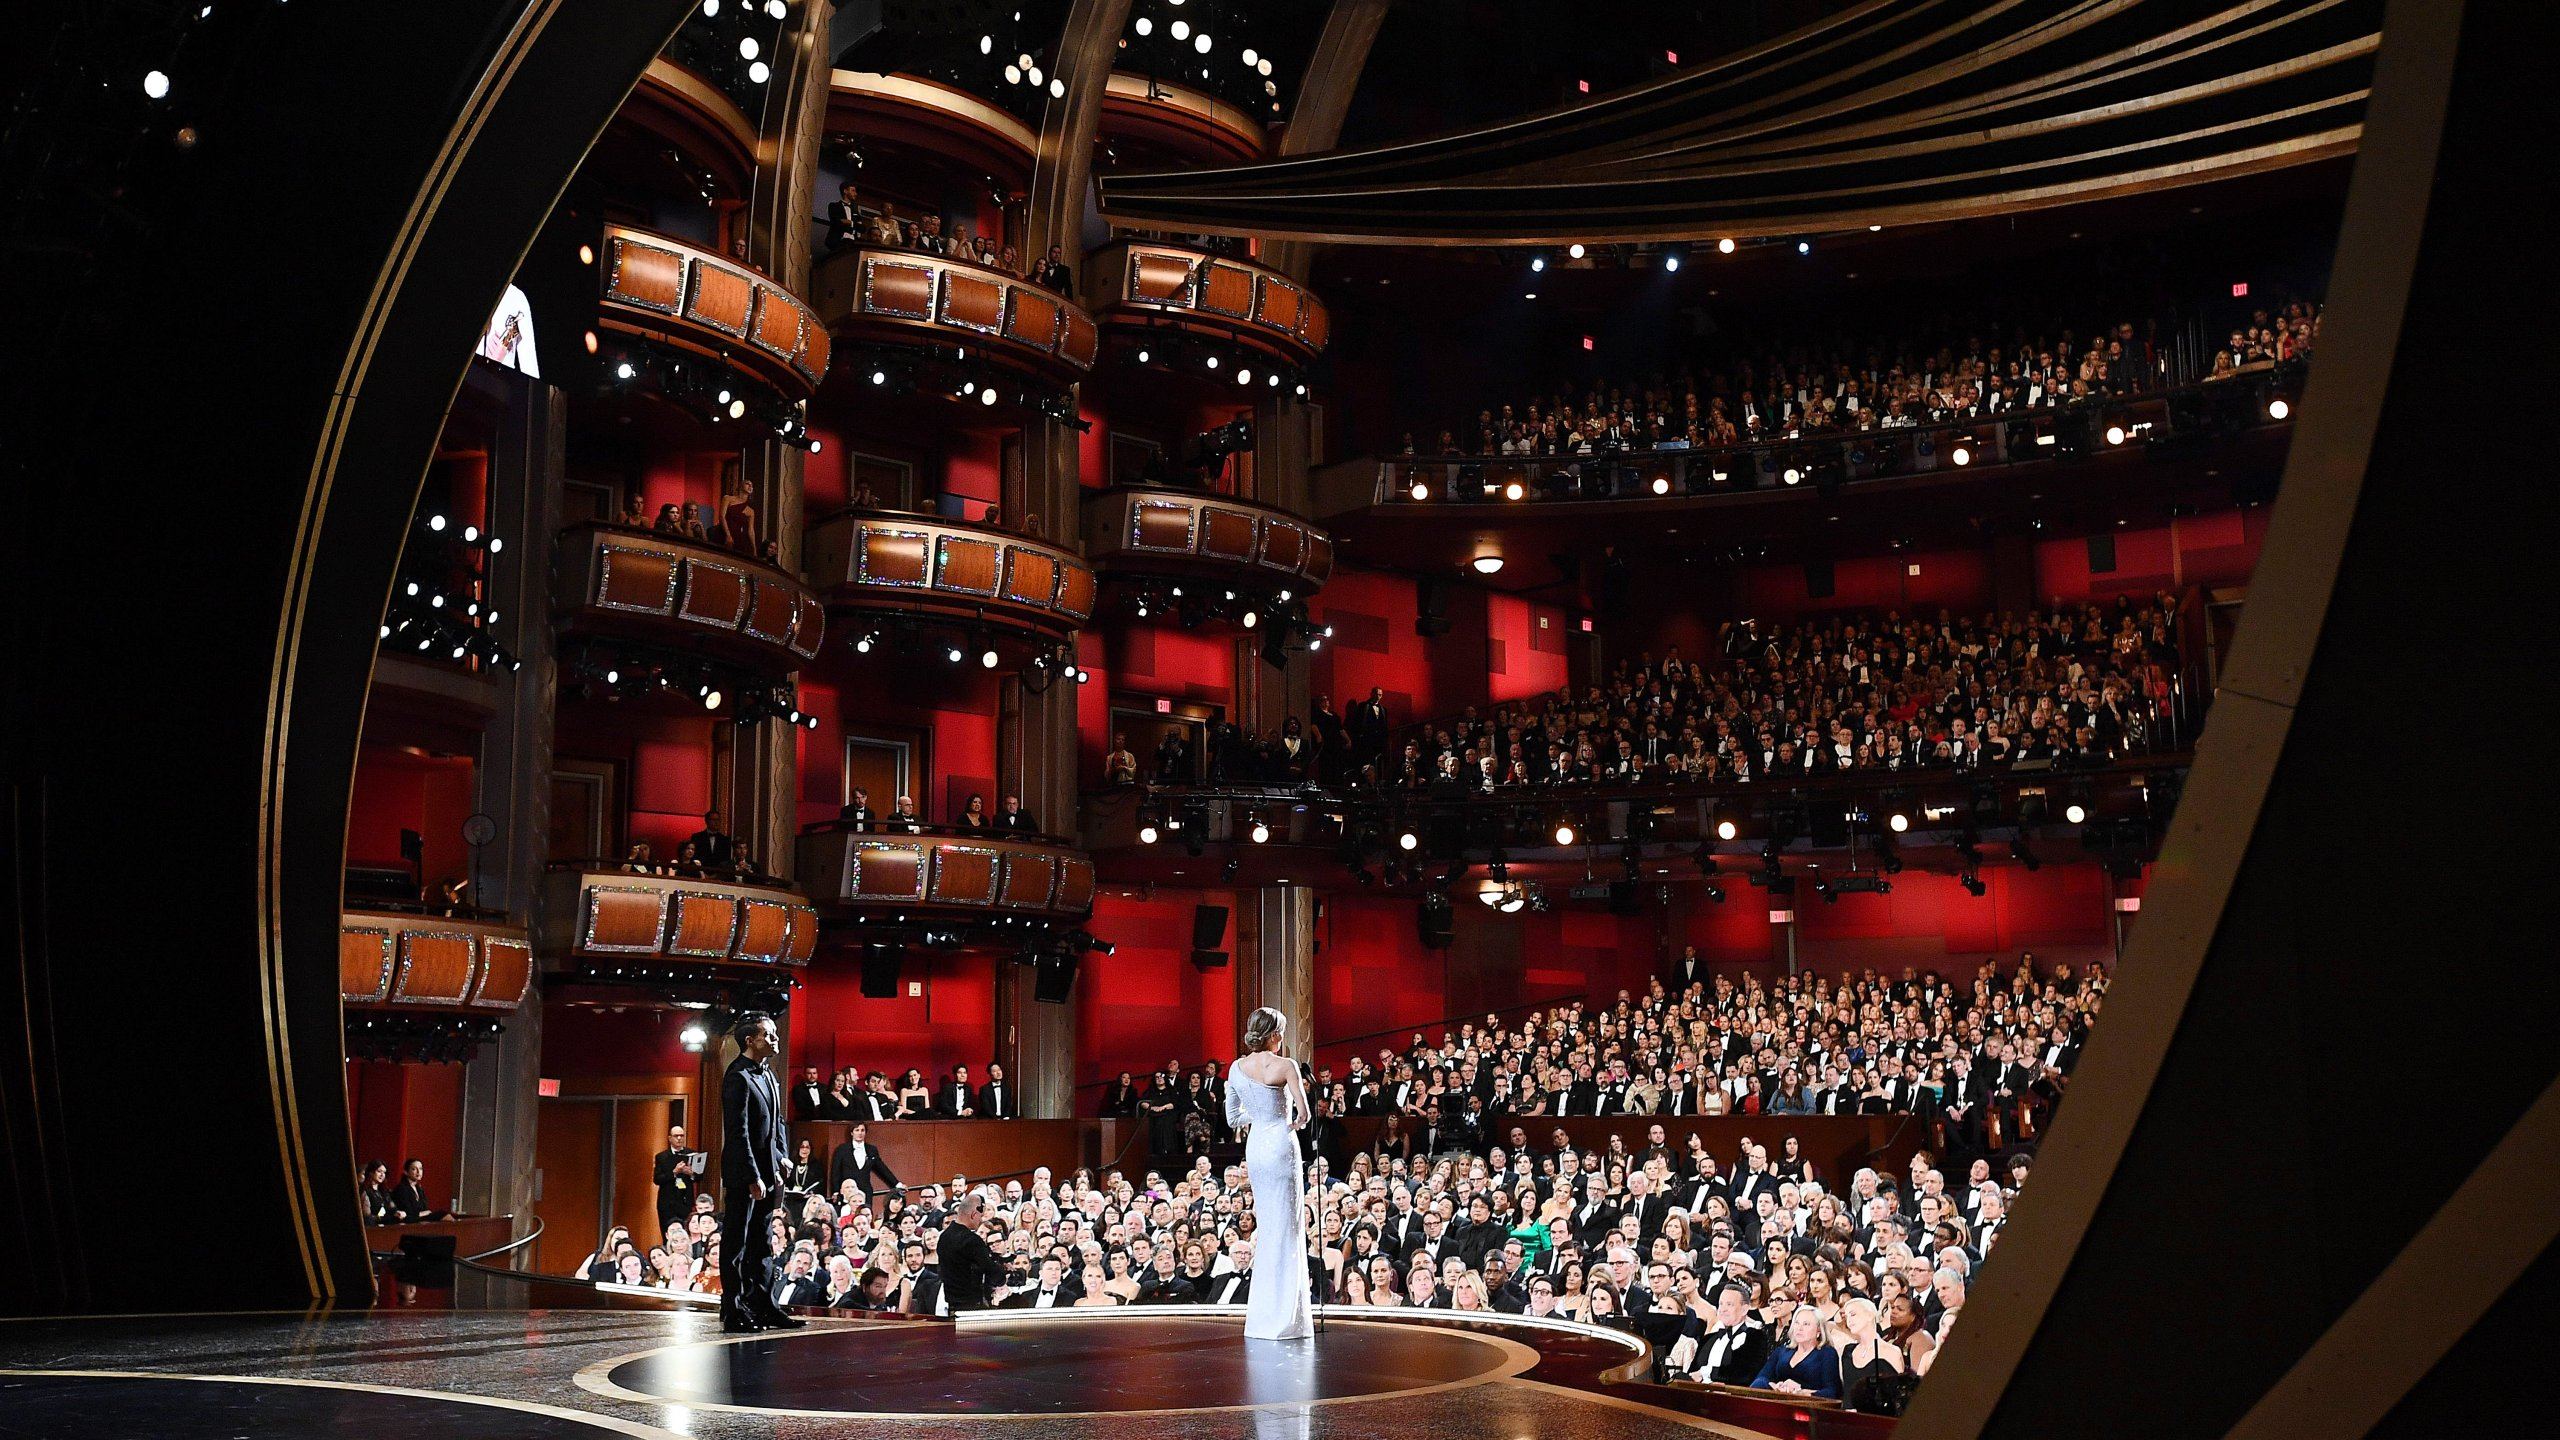 The 92nd Annual Academy Awards at the Dolby Theatre on Feb. 9, 2020, in Hollywood, California. (Credit: Richard Harbaugh - Handout/A.M.P.A.S. via Getty Images)